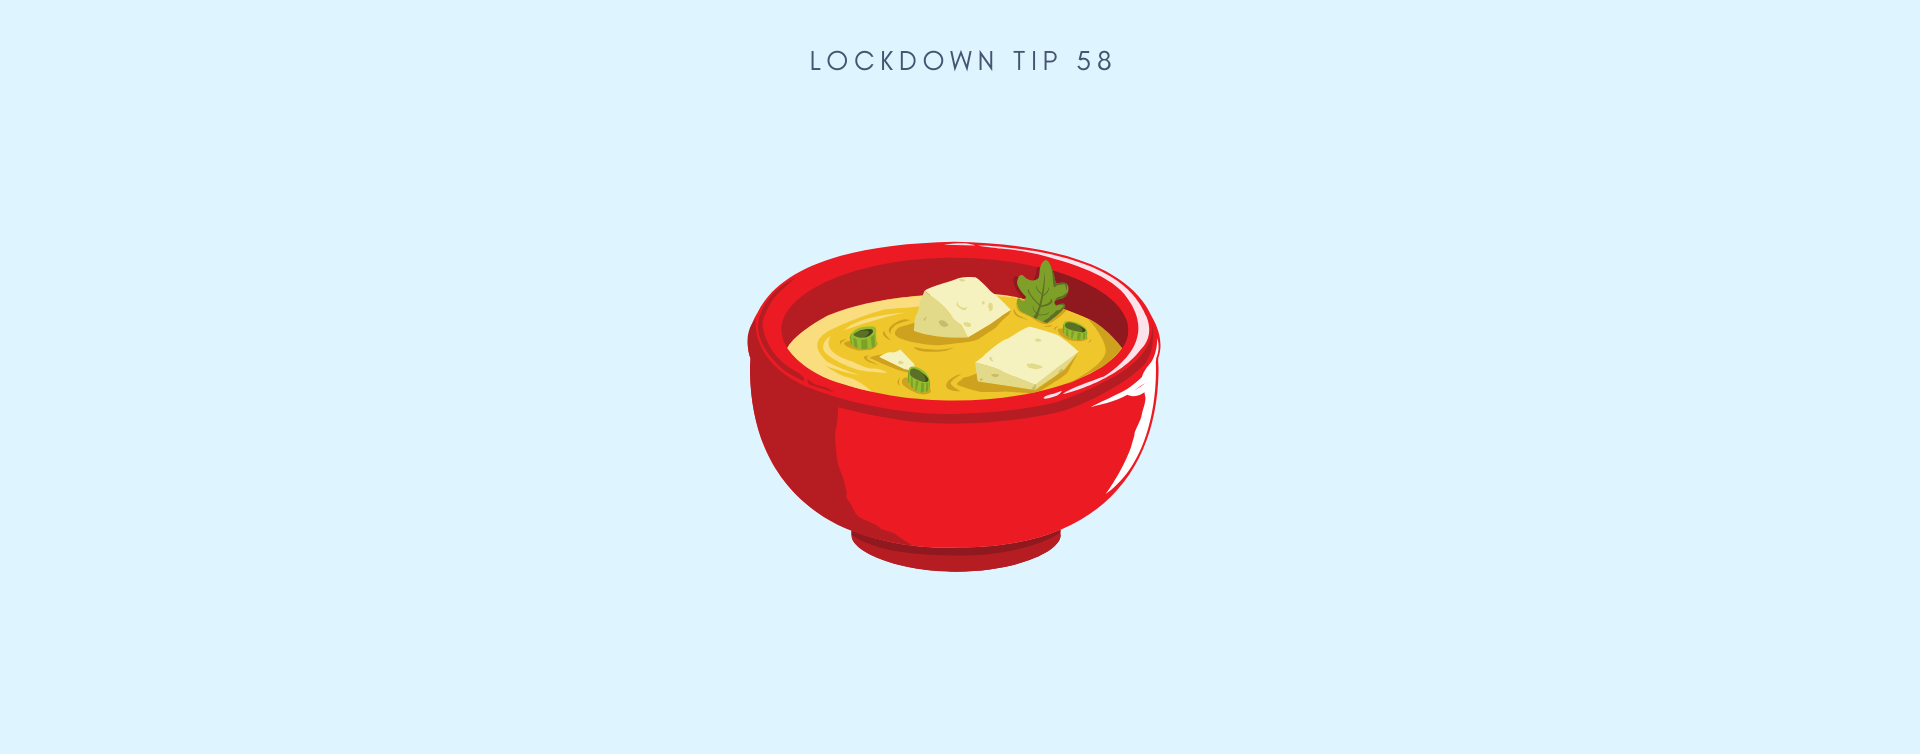 MCSA Lockdown Tip 58